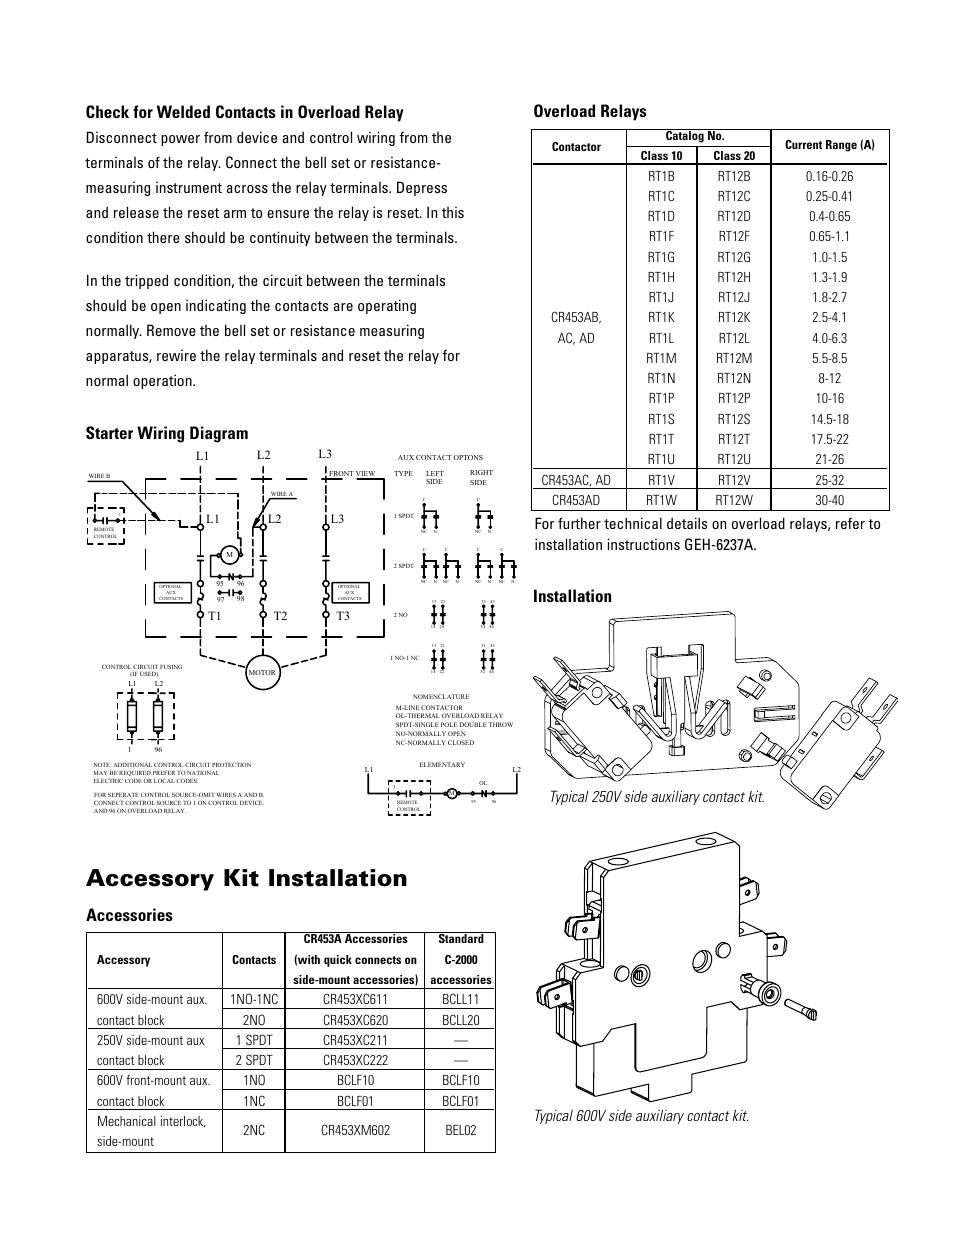 accessory kit installation, overload relays, starter wiring diagram  installation | ge industrial solutions cr454a